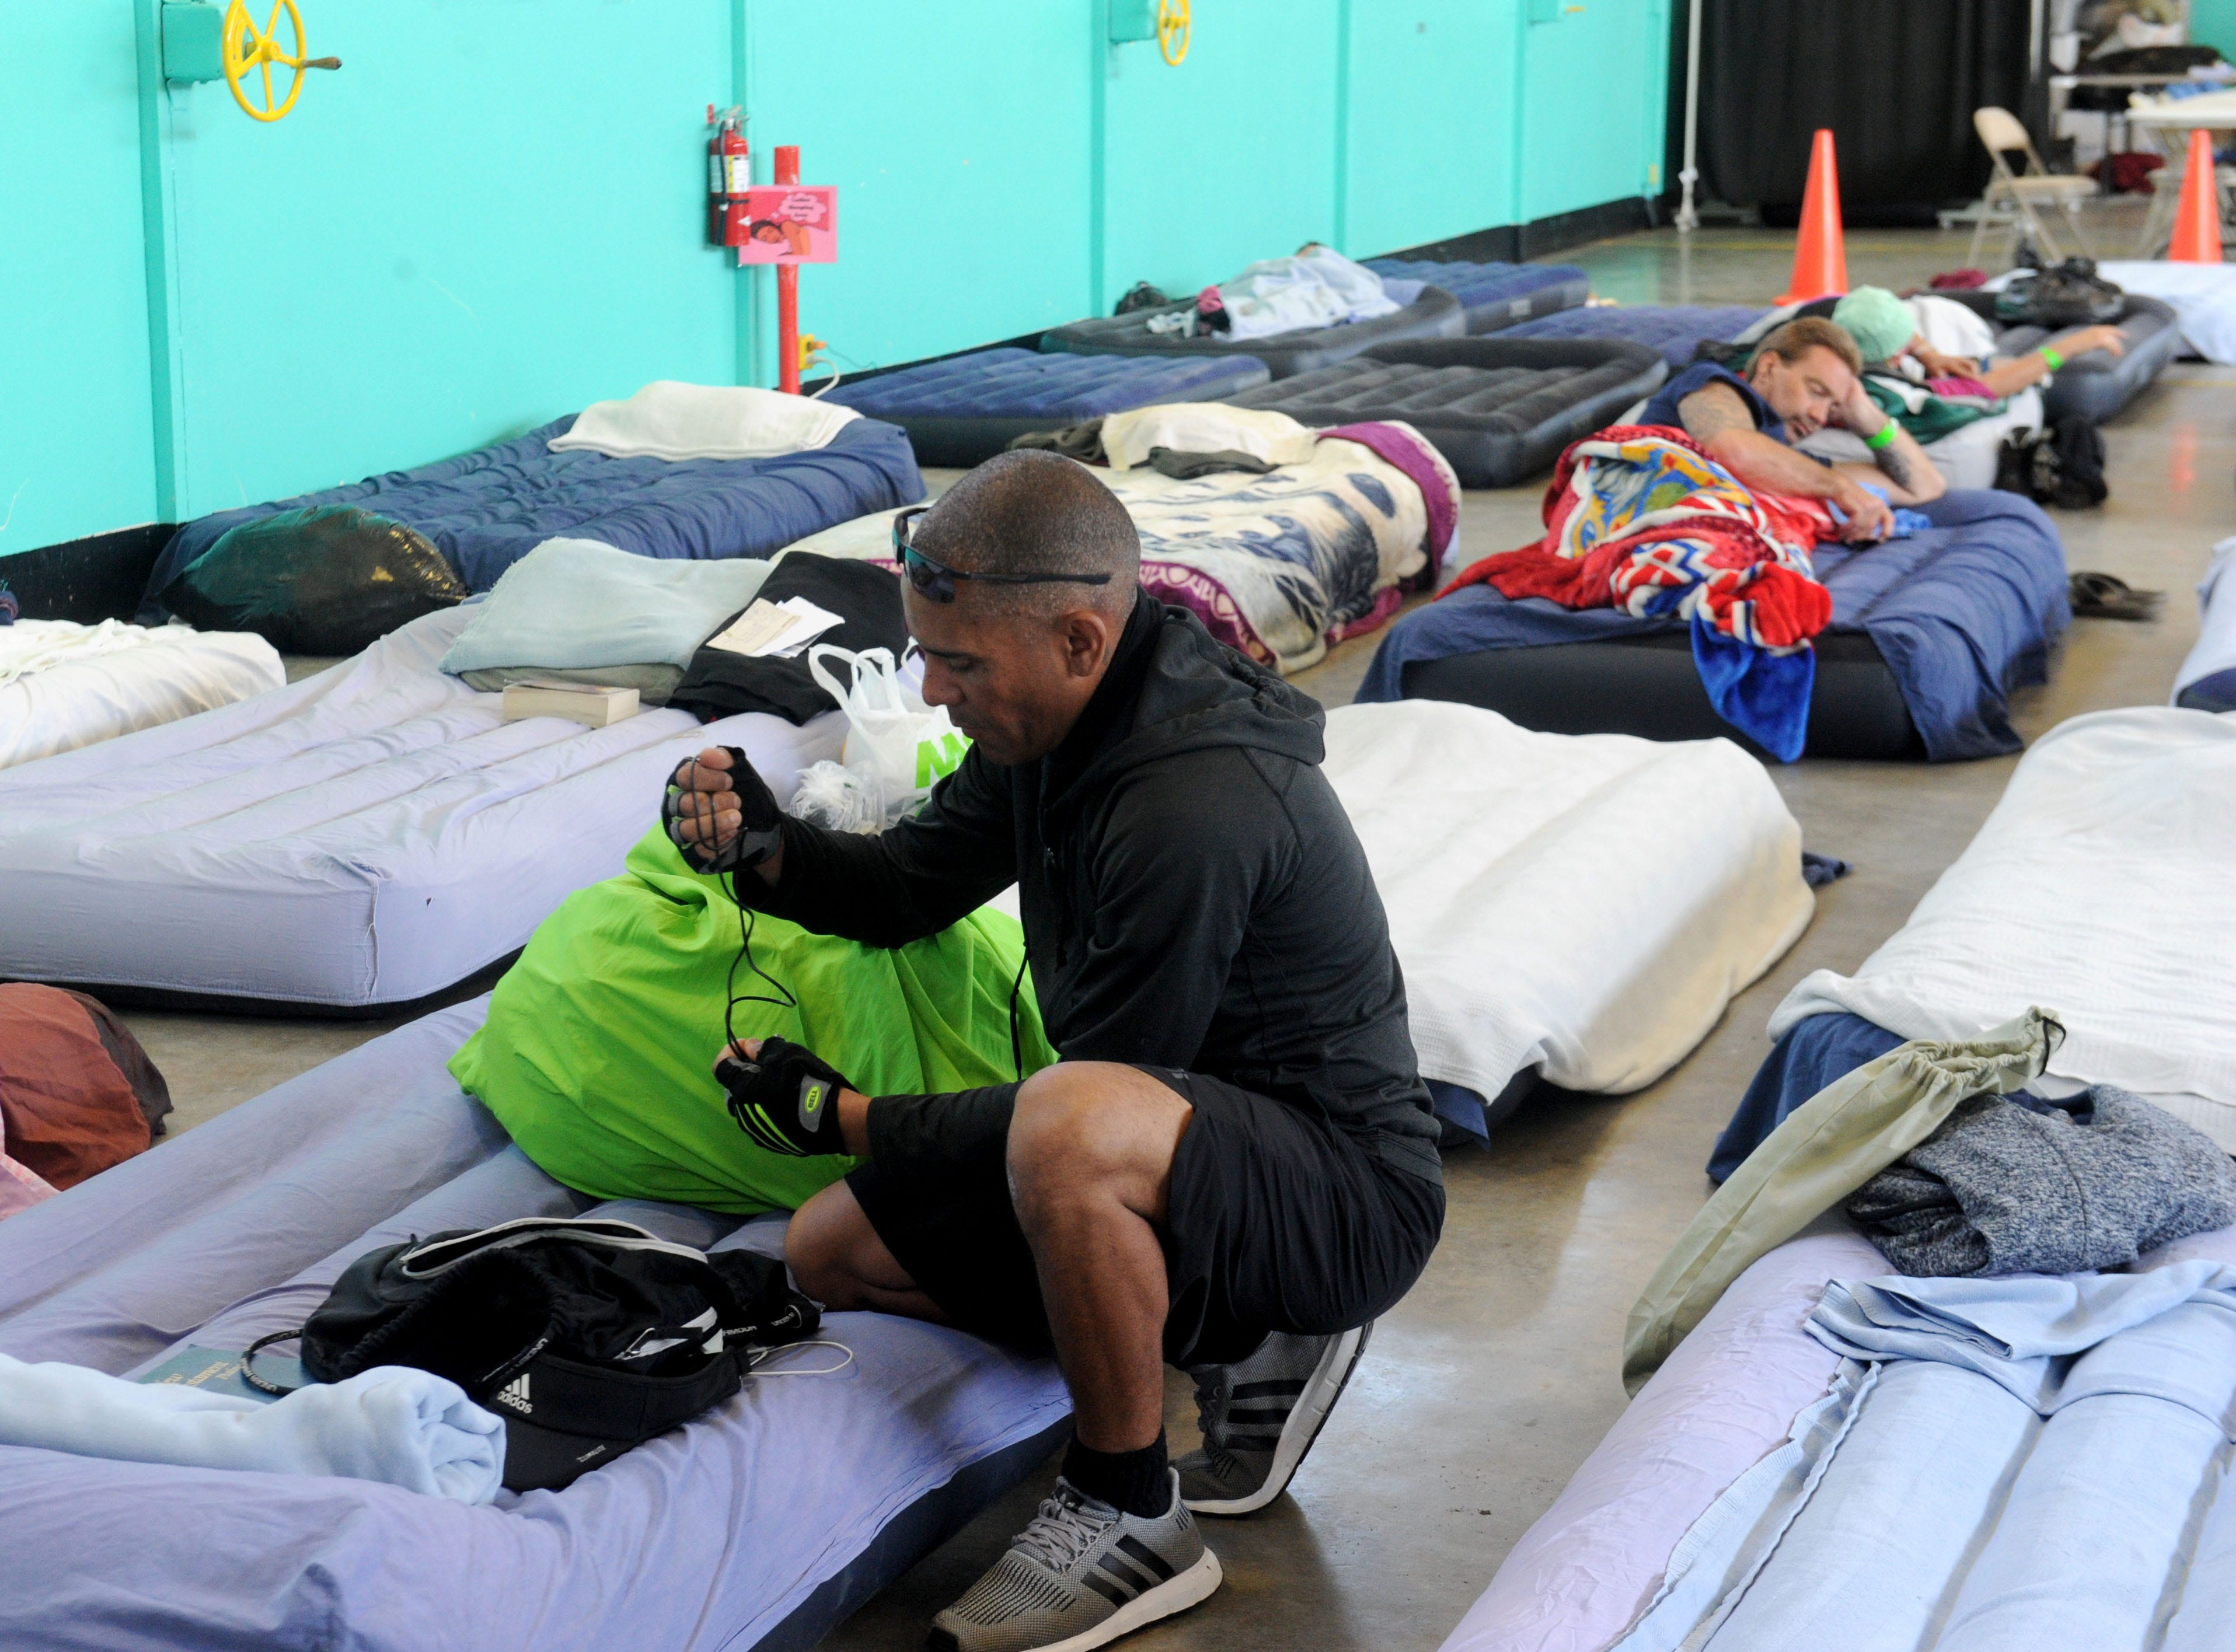 Samuel Foster gets ready to leave the Oxnard homeless shelter to run errands. This is the first year for the the west county shelter to be open 24 hours a day.